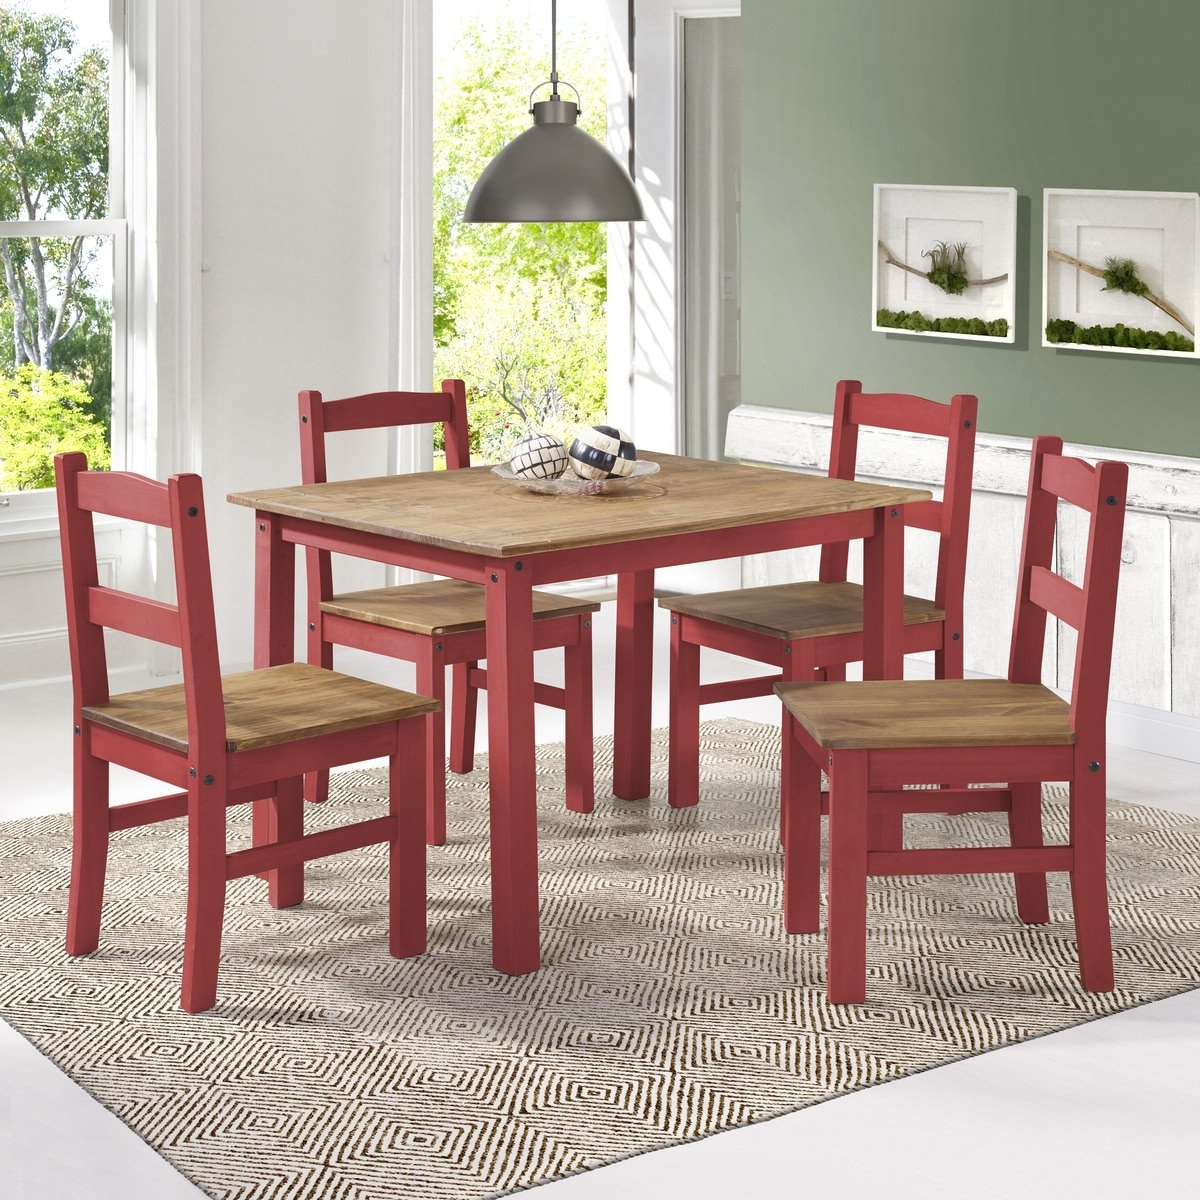 York Red Wash 5 Piece Solid Wood Dining Setmanhattan Comfort For Most Current Walden 9 Piece Extension Dining Sets (View 25 of 25)